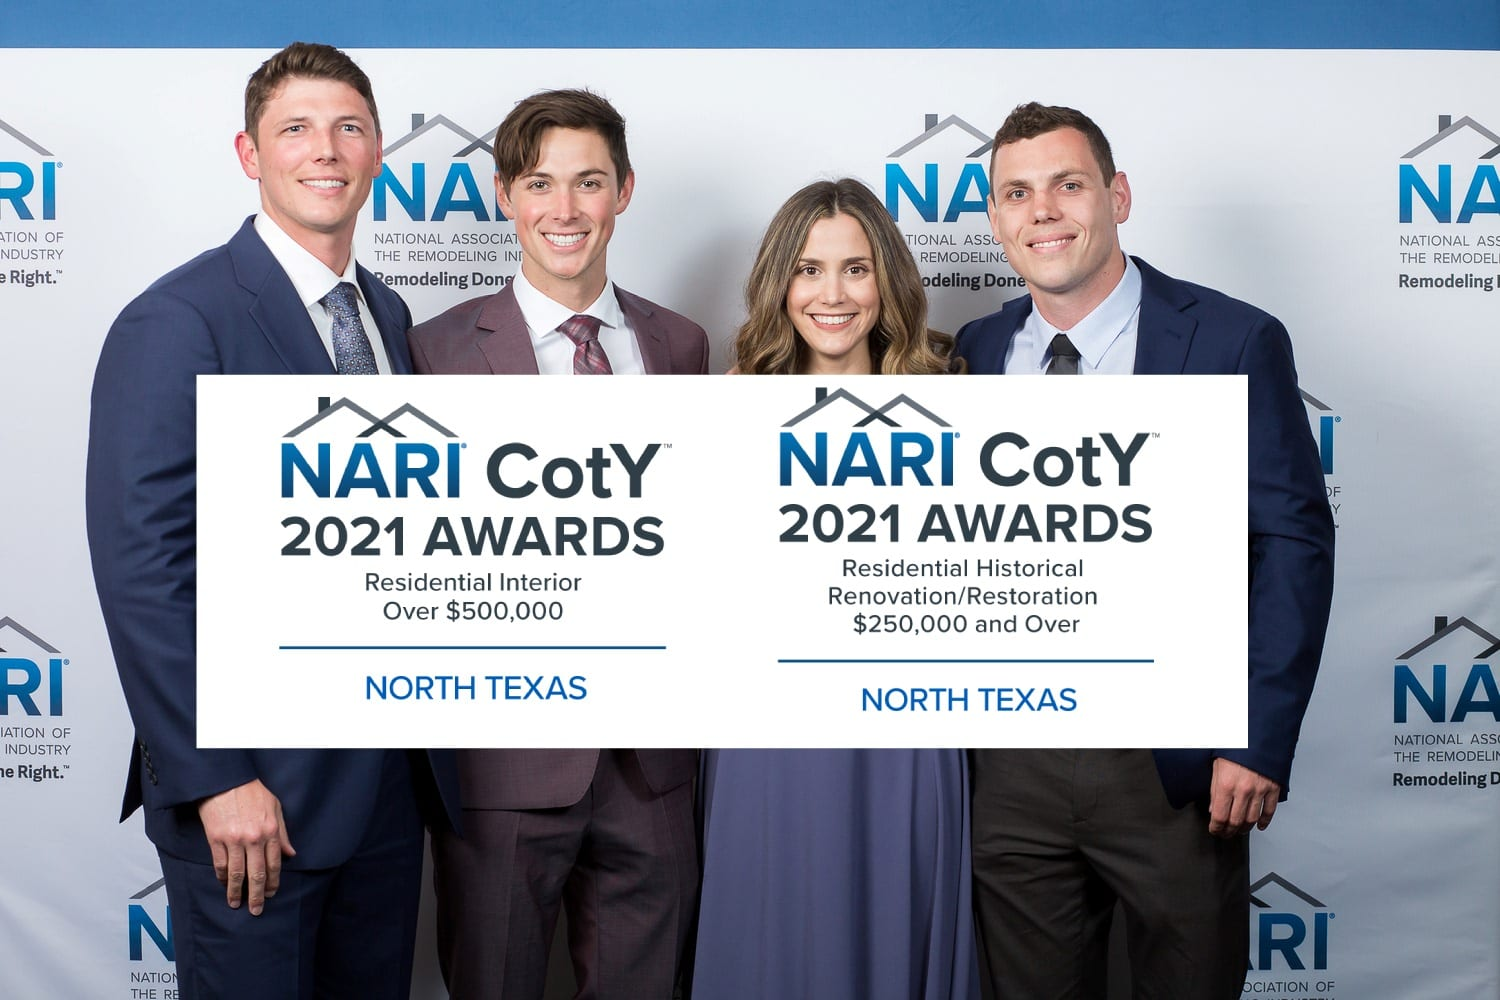 Renowned Renovation Wins Dallas NARI Contractor of the Year Awards